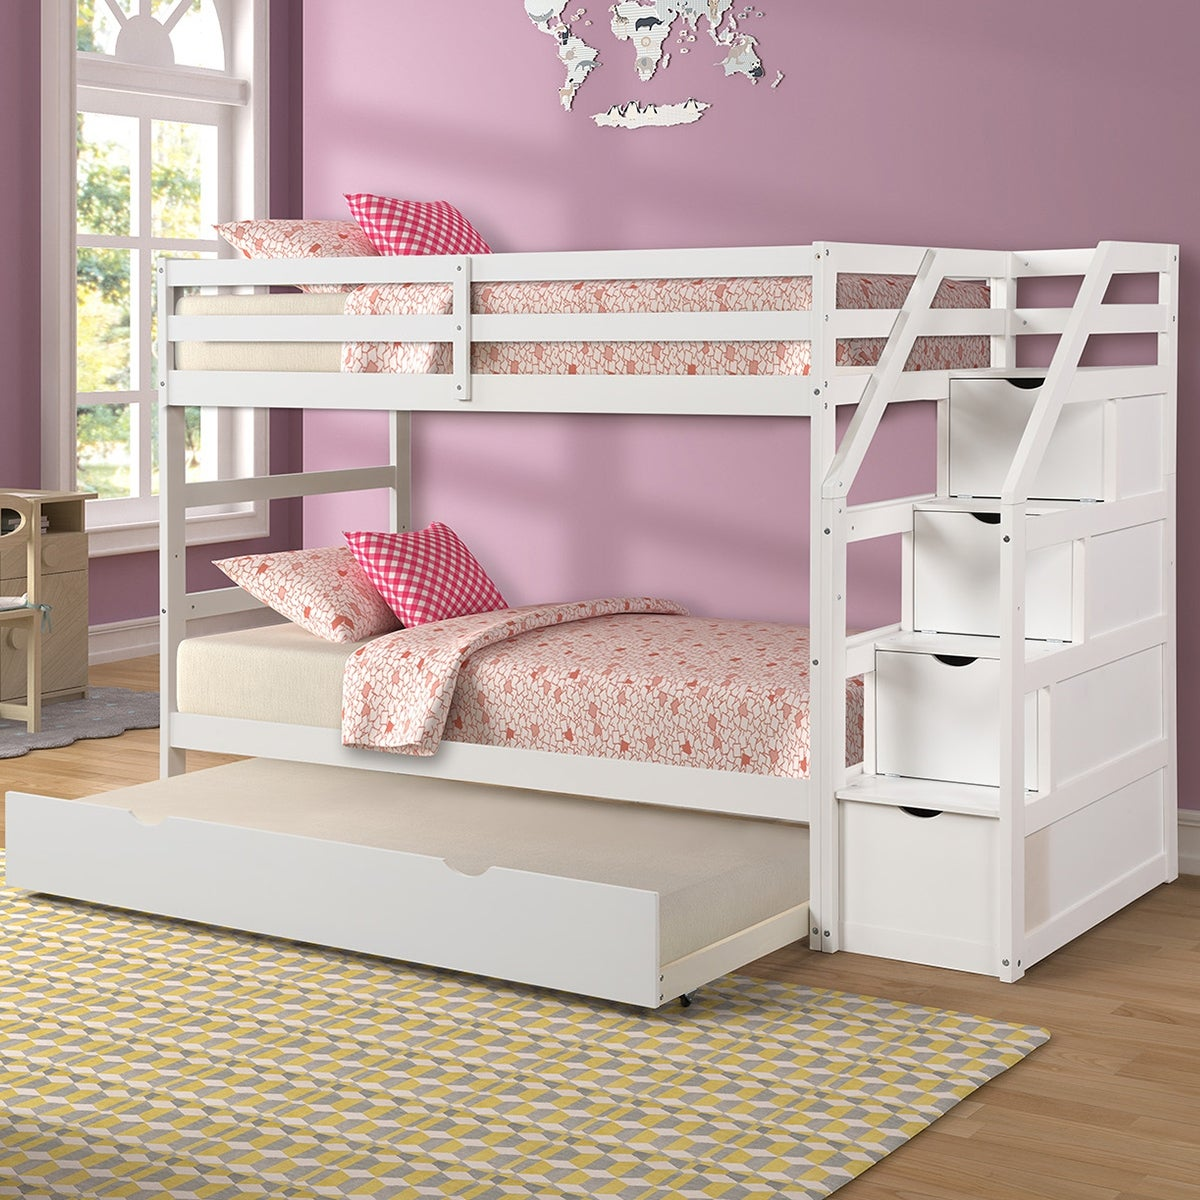 Merax Twin Over Twin Stair Bunk Bed With Storage Ladder And Trundle Overstock 30538386